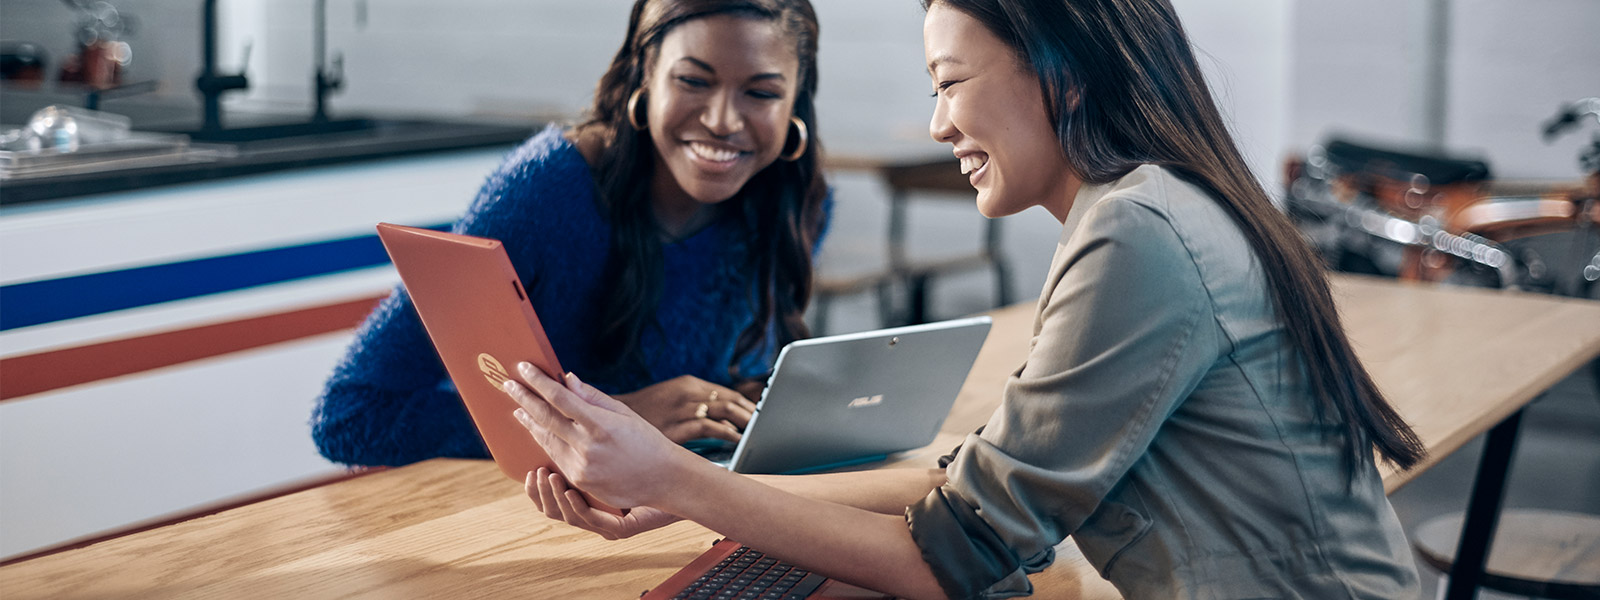 Two women seated at table, looking at a tablet screen being help up between them by the other woman